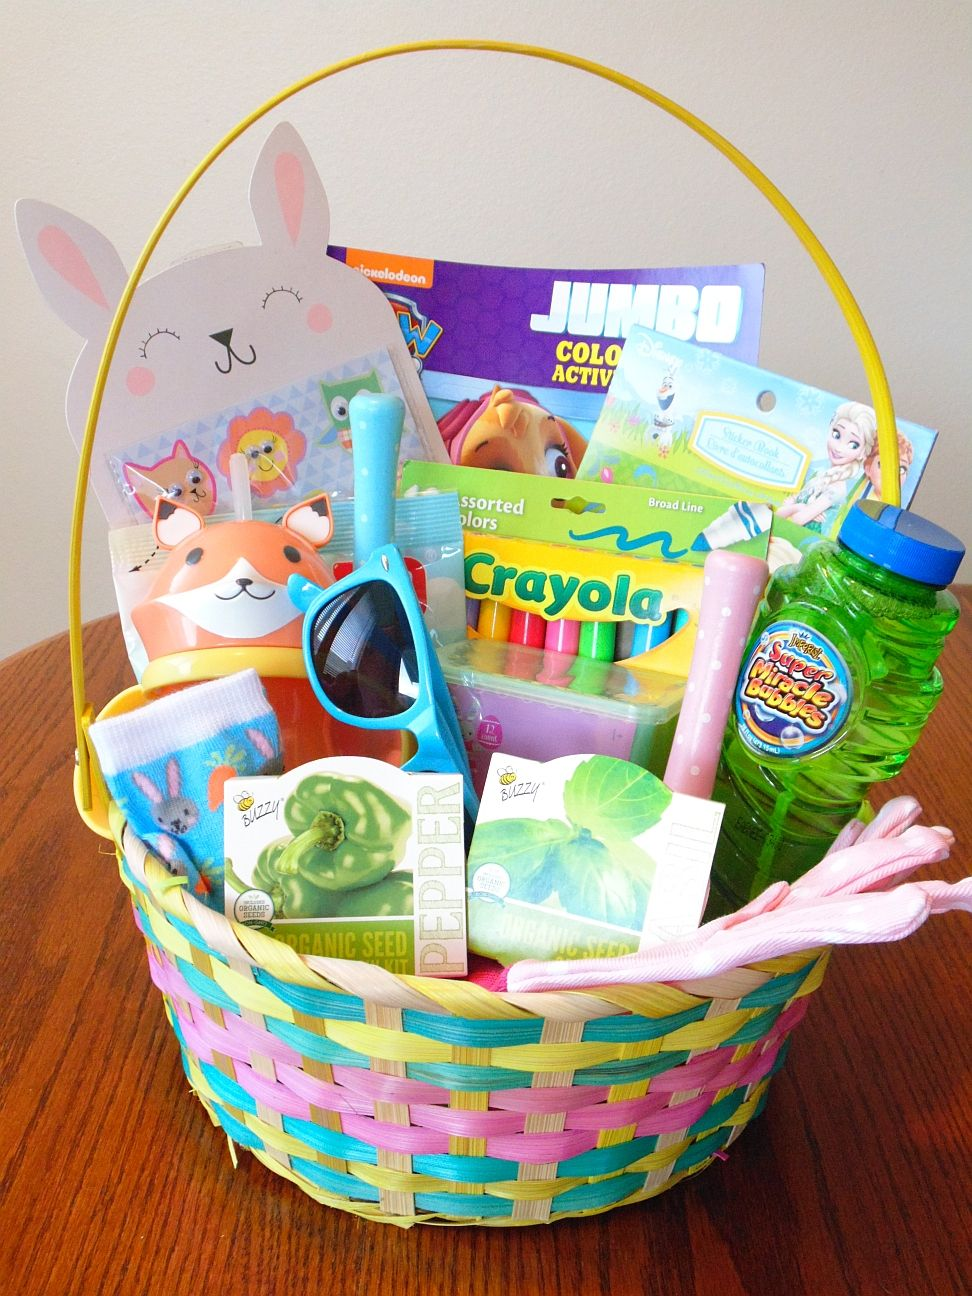 101 easter basket ideas for babies and toddlers that arent candy 101 easter basket ideas for babies and toddlers that arent candy negle Choice Image